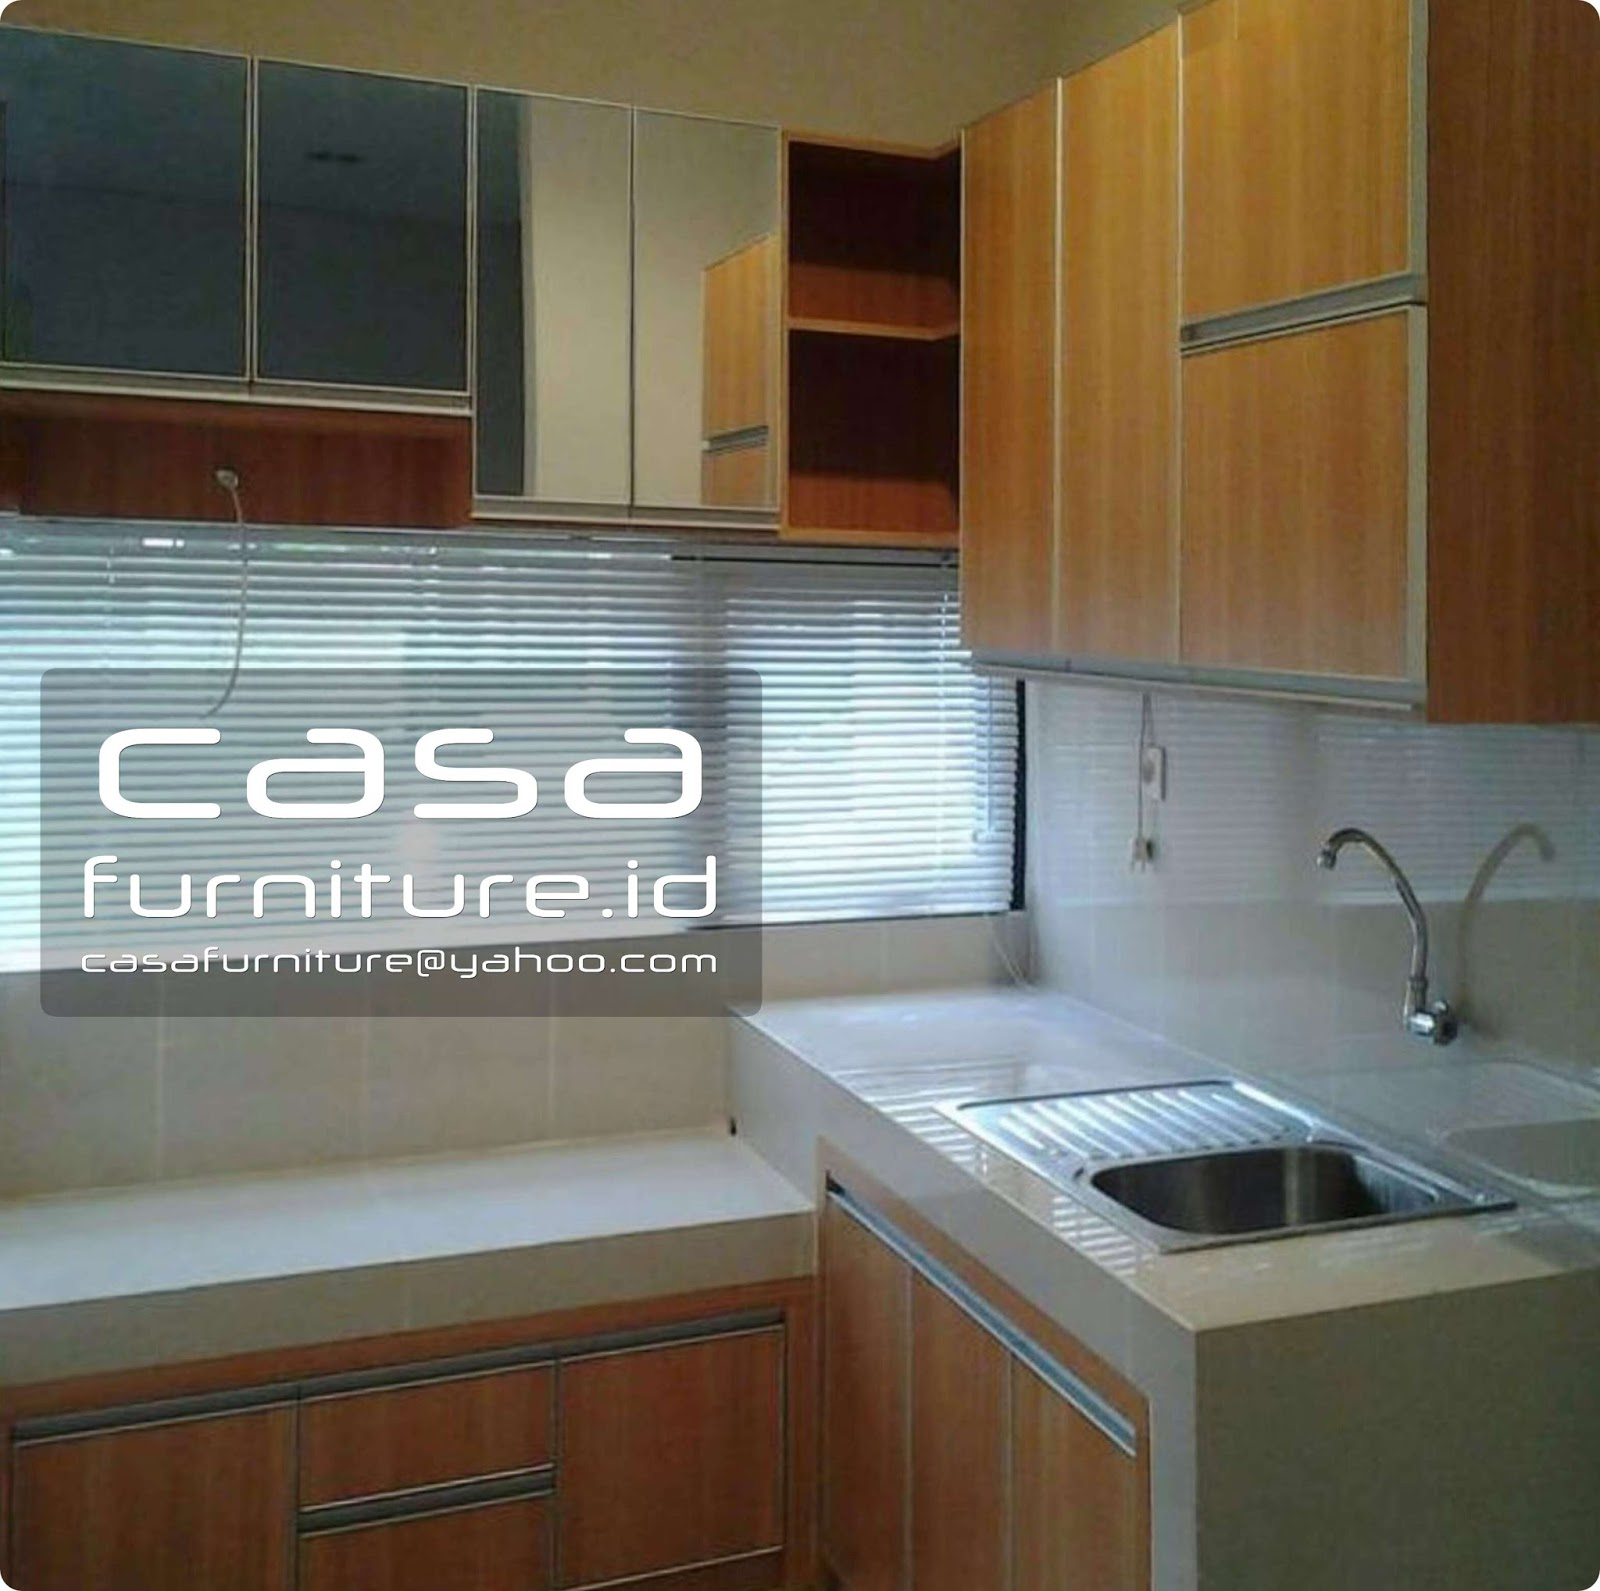 Kitchen Set Project Bsd Furniture Minimalis Tangerang Kitchen Set